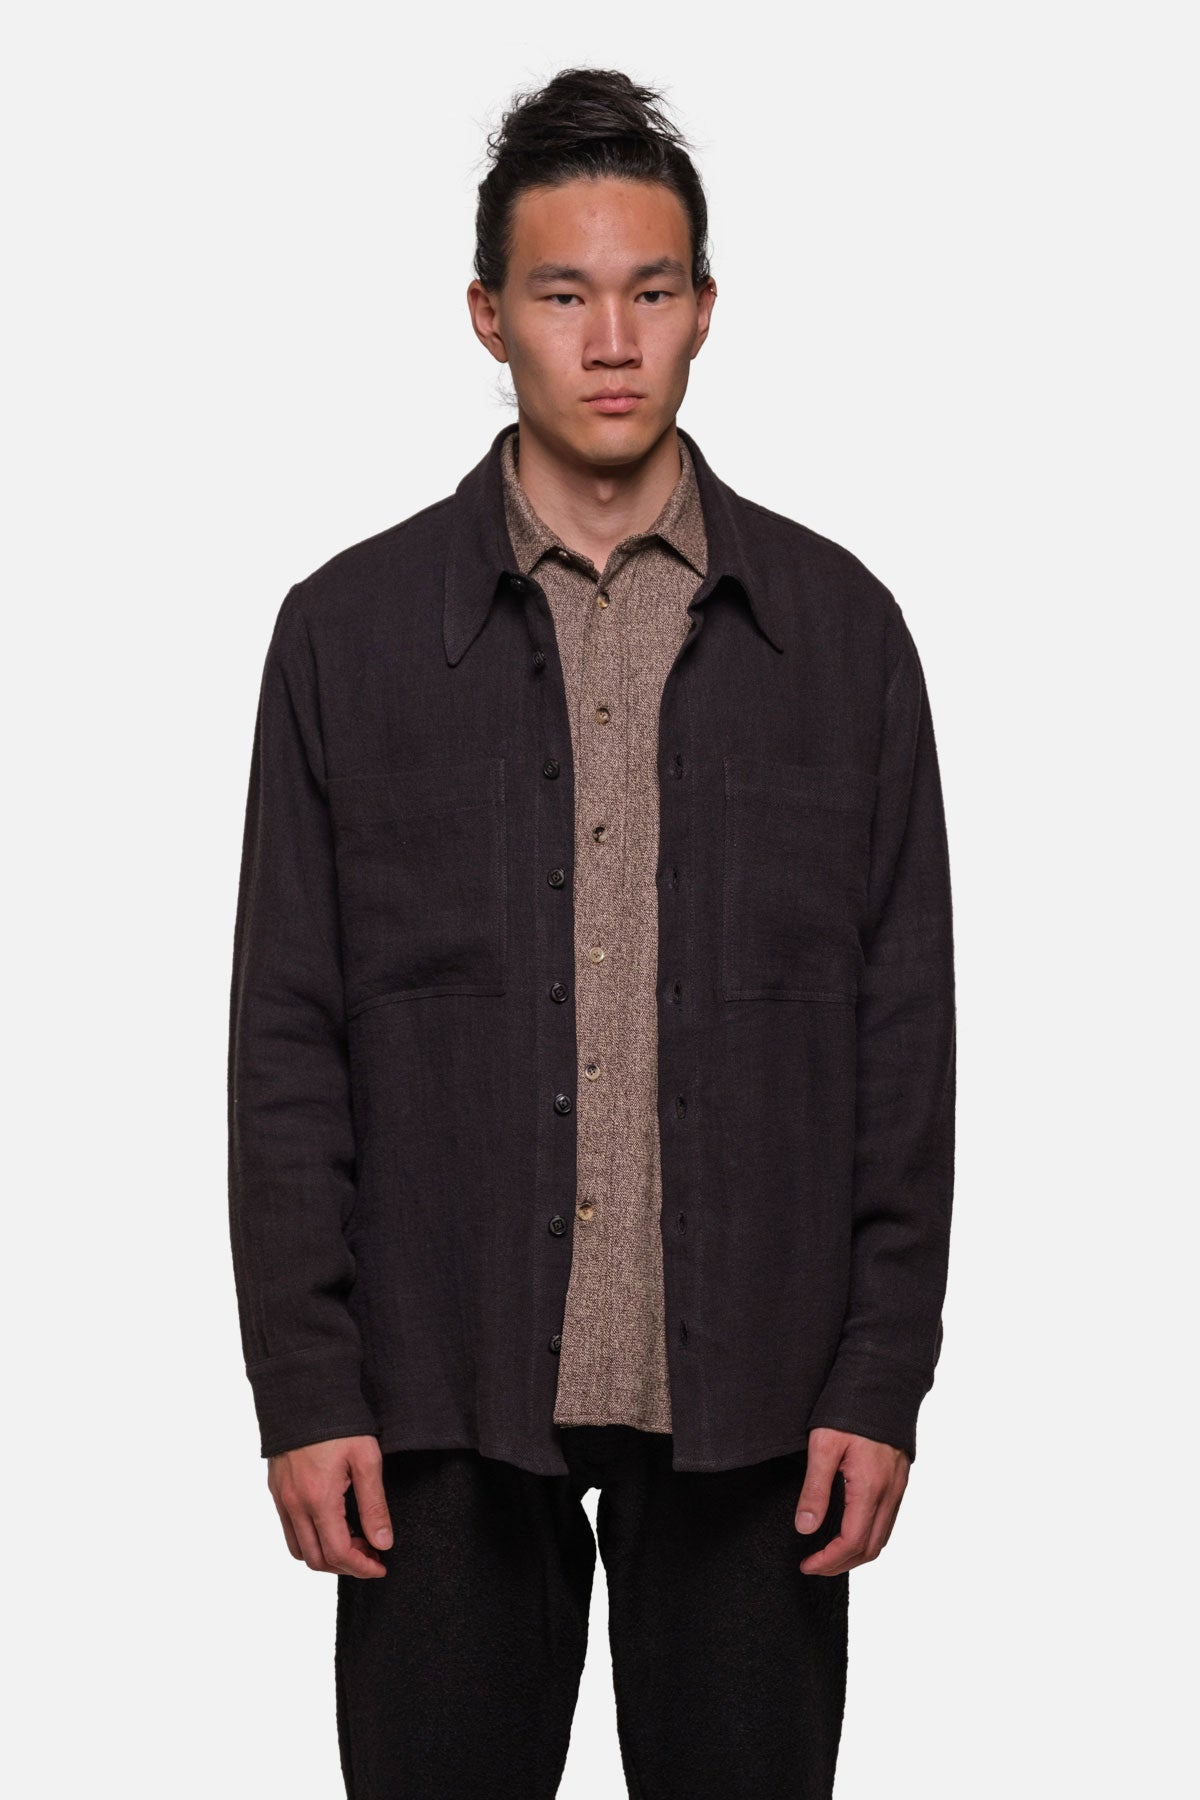 BROADWAY SHIRT IN BLACK - Fortune Goods